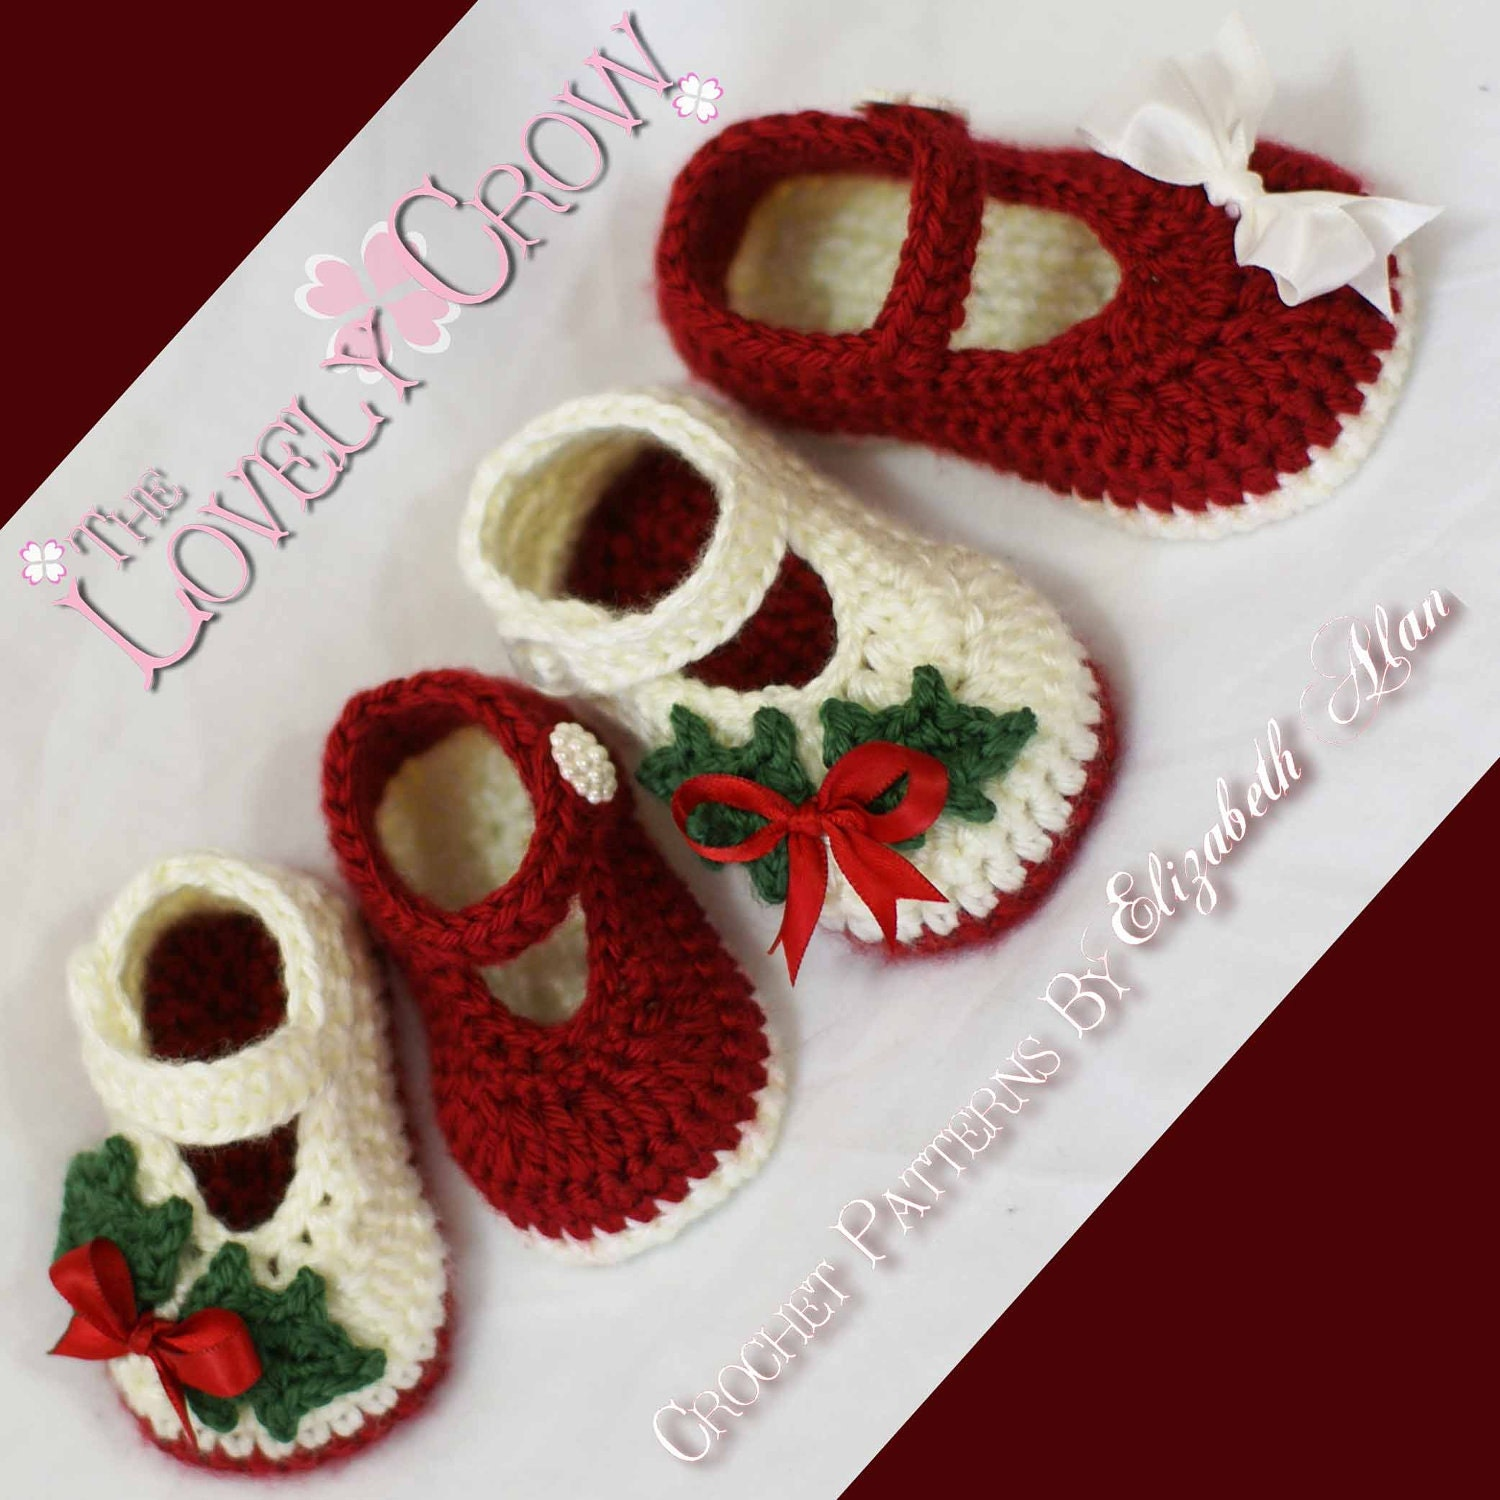 Dec 09,  · Make Christmas Special Crochet Red White Baby Booties Sandle for Cute & Innocent Baby!